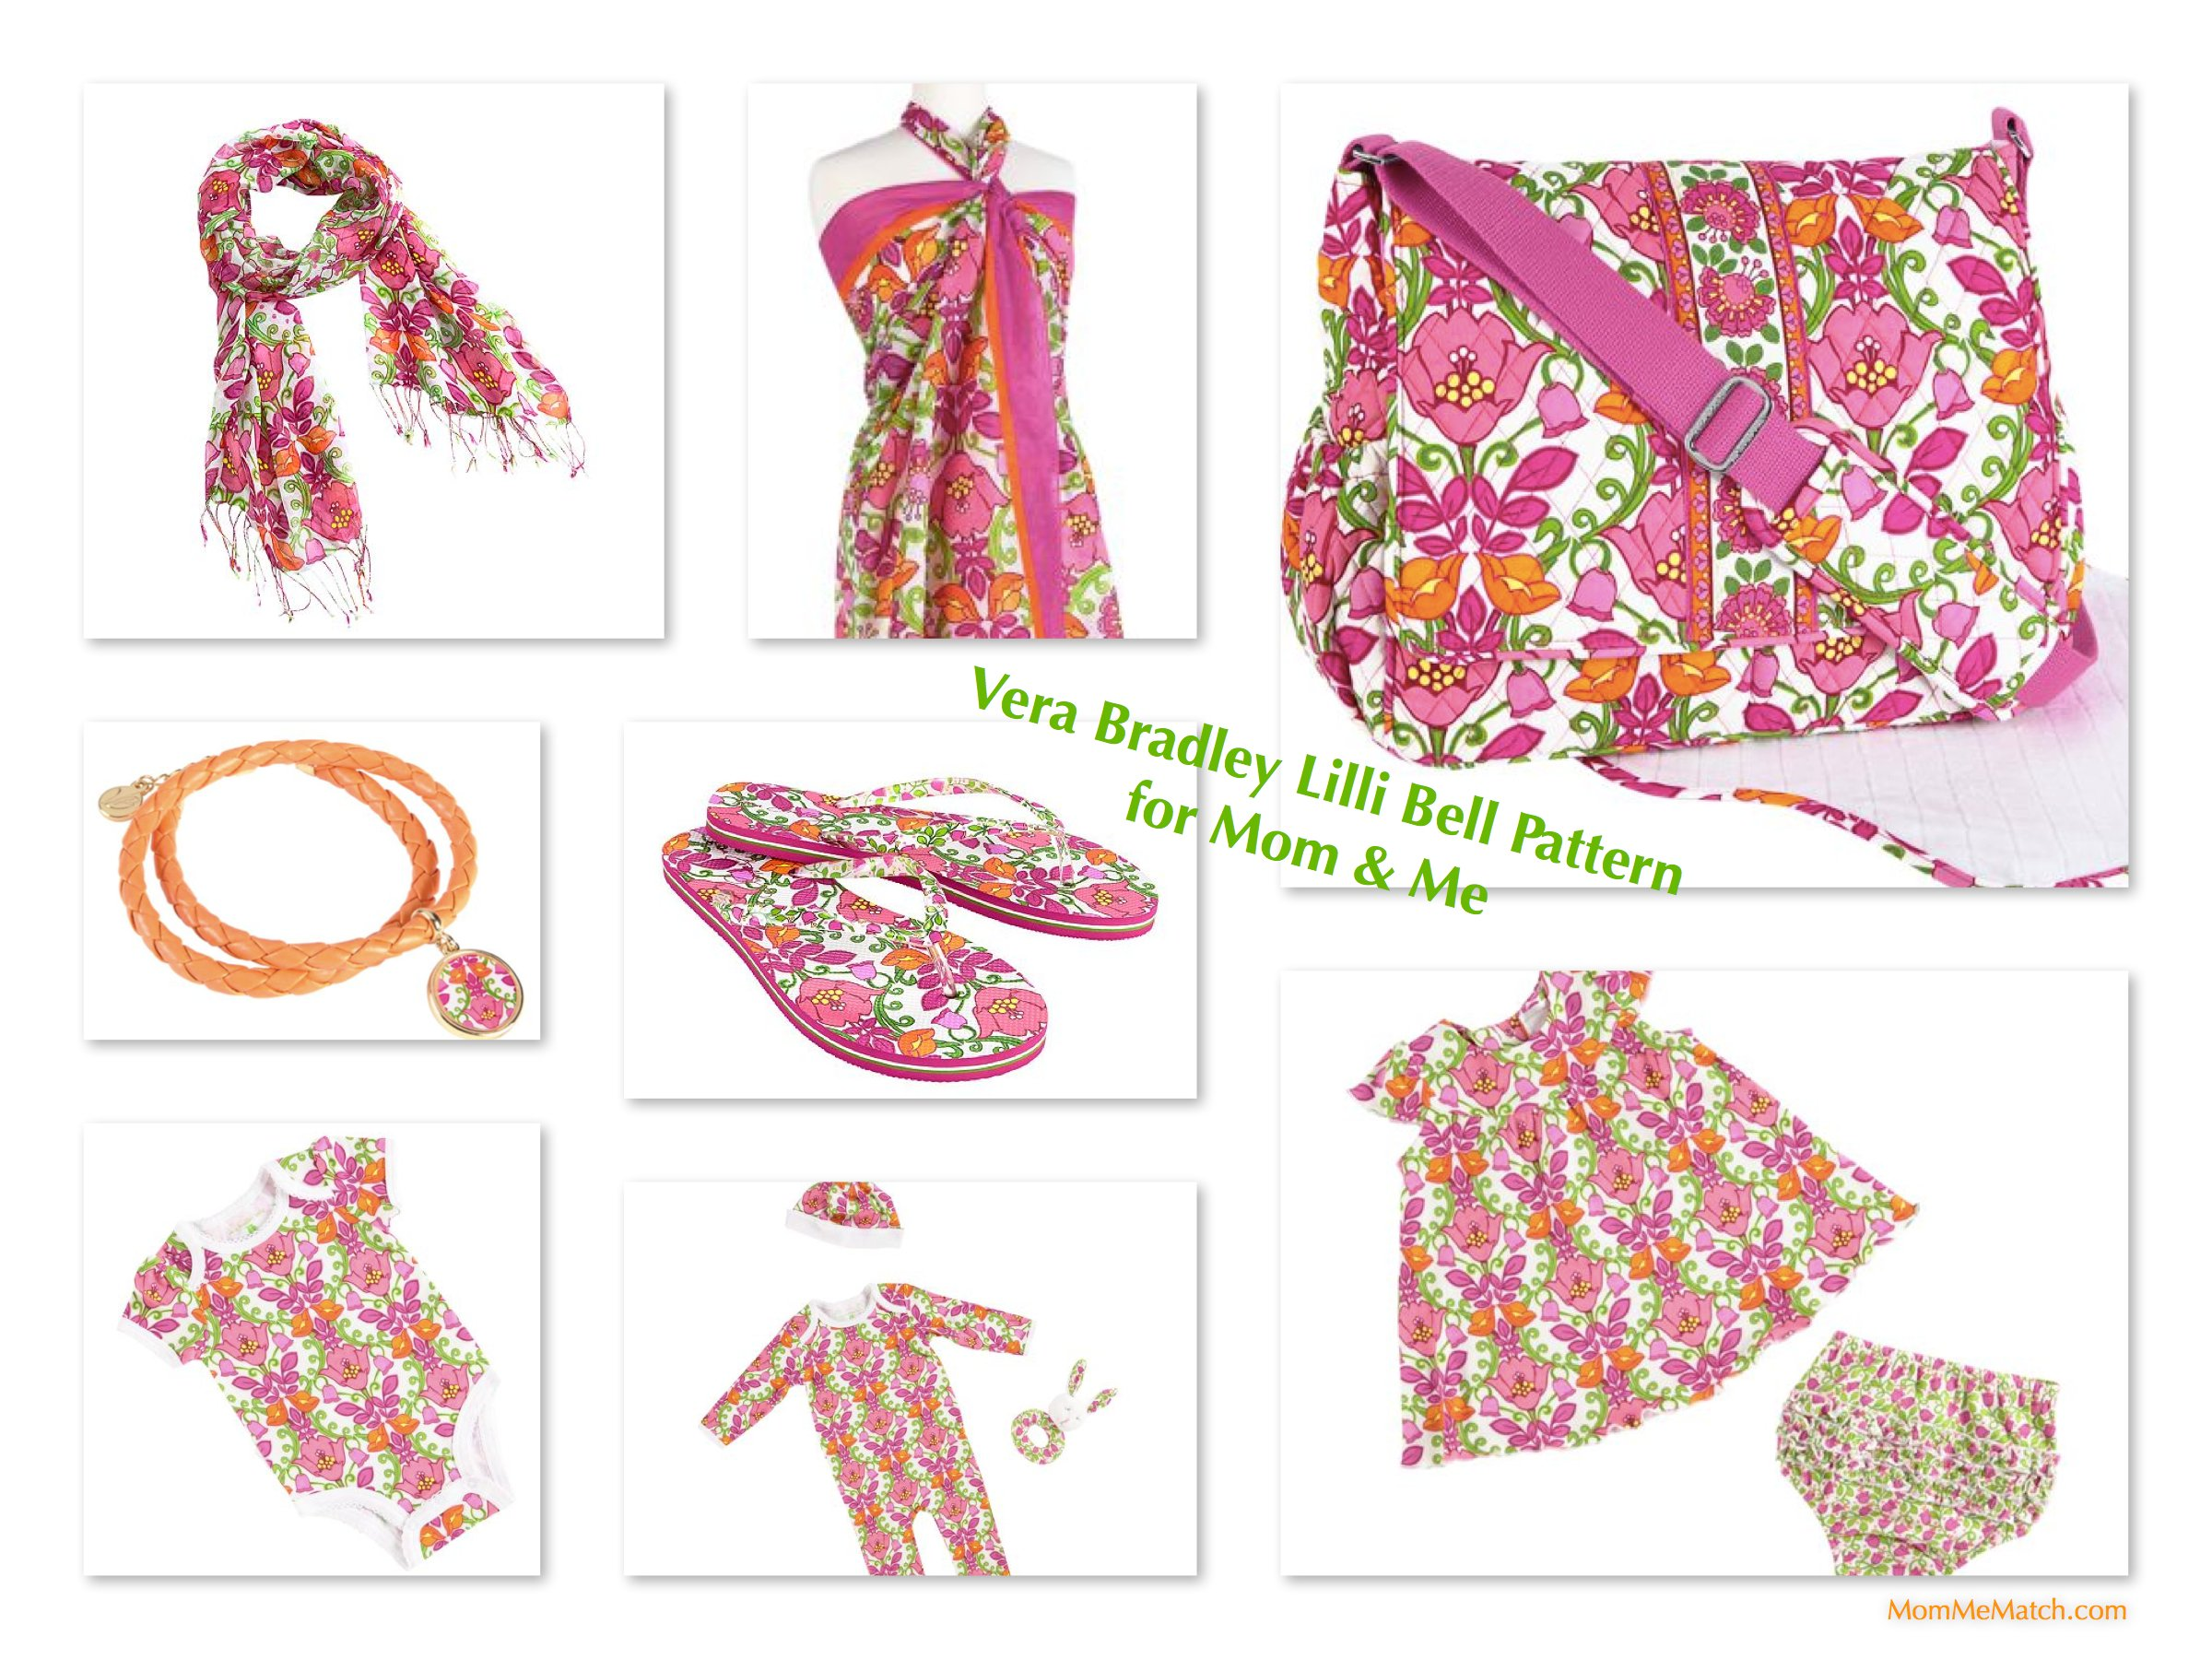 Mom & Me Matching Vera Bradley Lilli Bell Pattern Baby Bags & Outfits